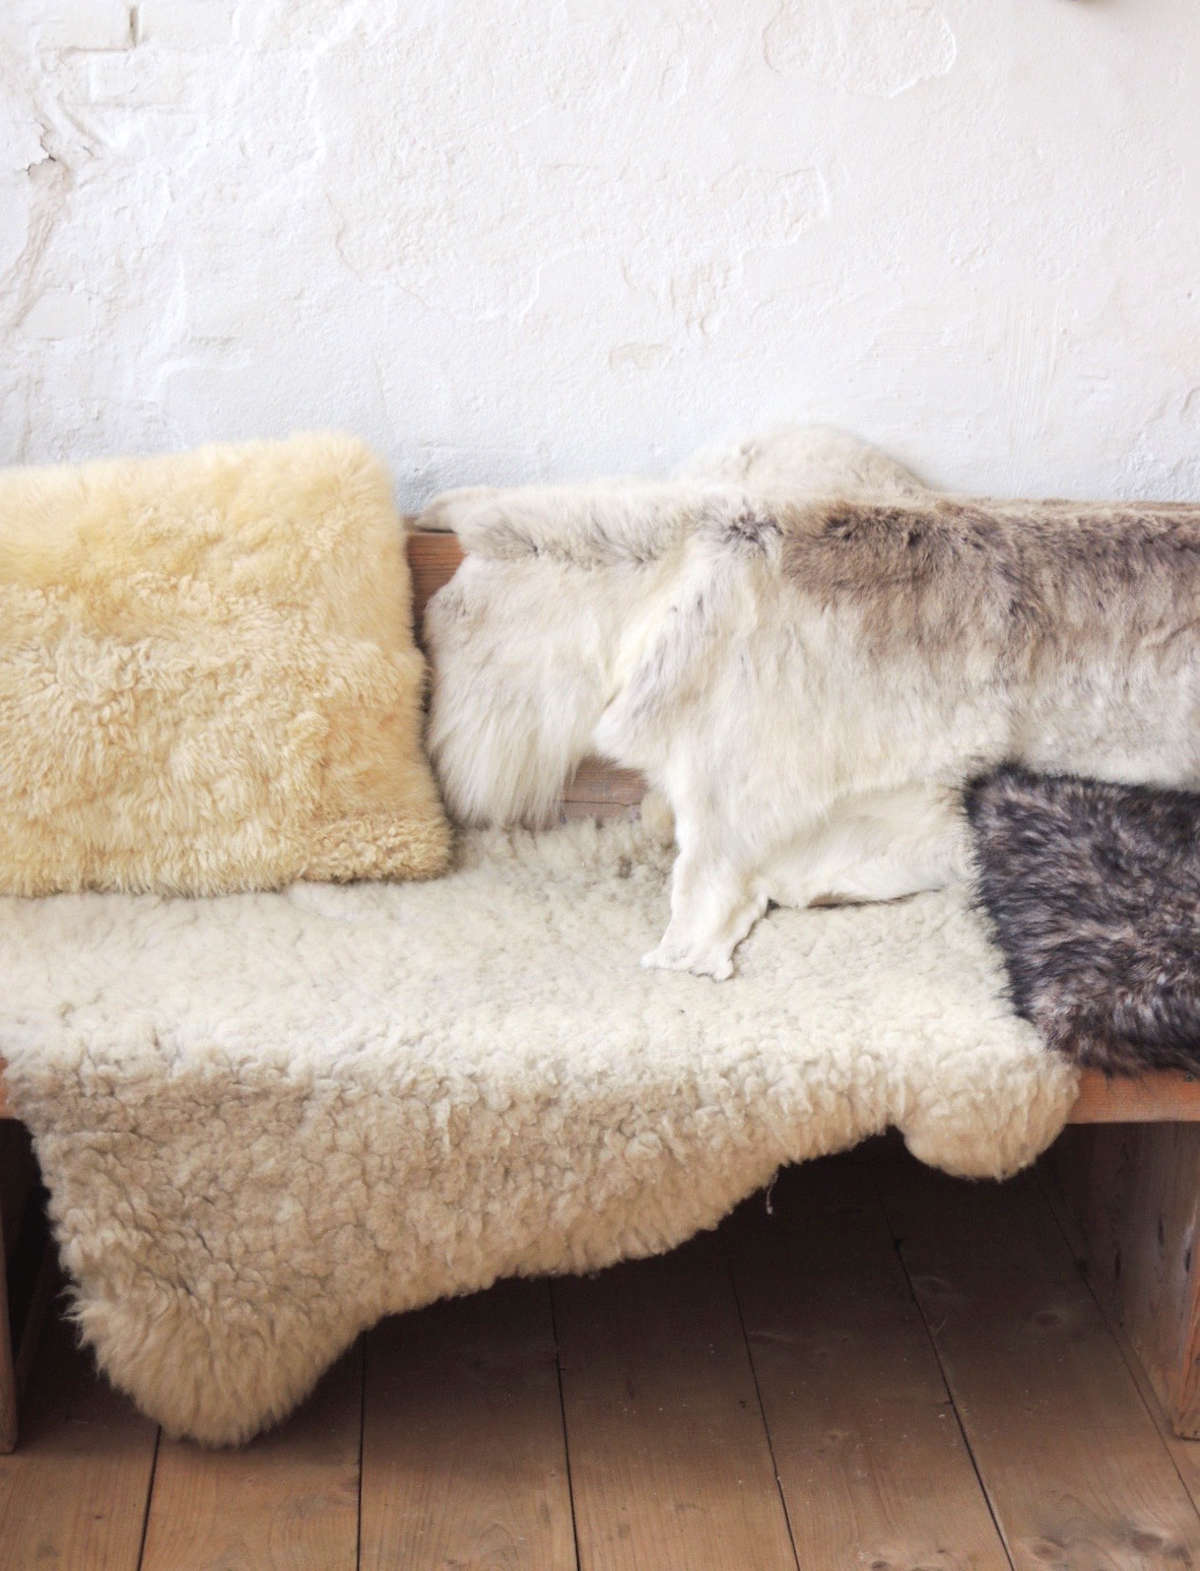 Sheepskins, hides, and pillows cover an unfinished wood bench.Photograph courtesy of Carla Zwart of Met Melk & Suikerfrom our post Through the Looking Glass:  New Trends for Fall .